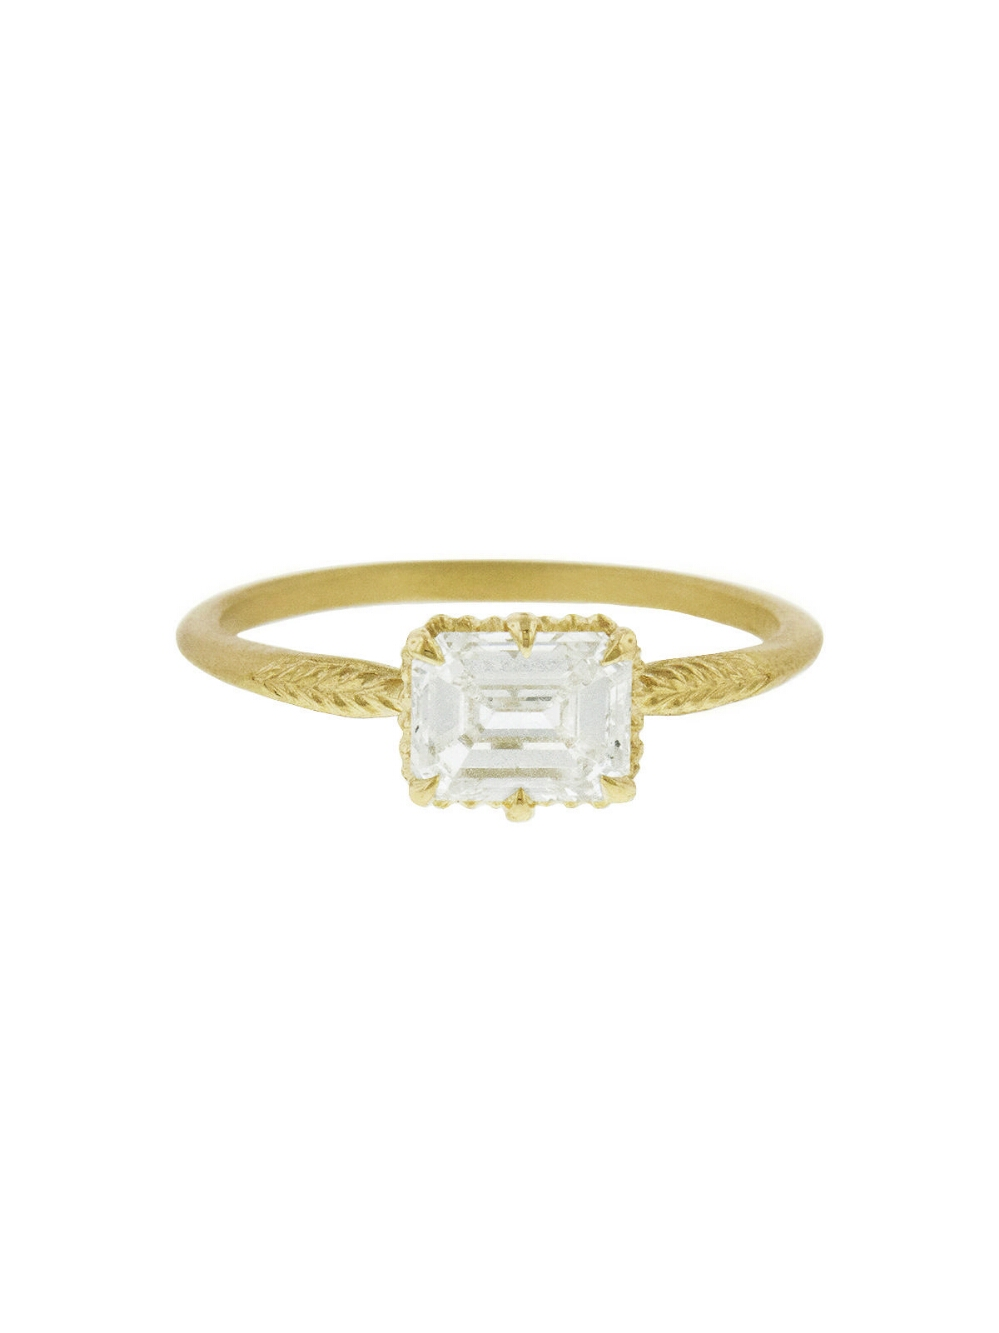 east west engagement rings gold emerald cut diamond ring